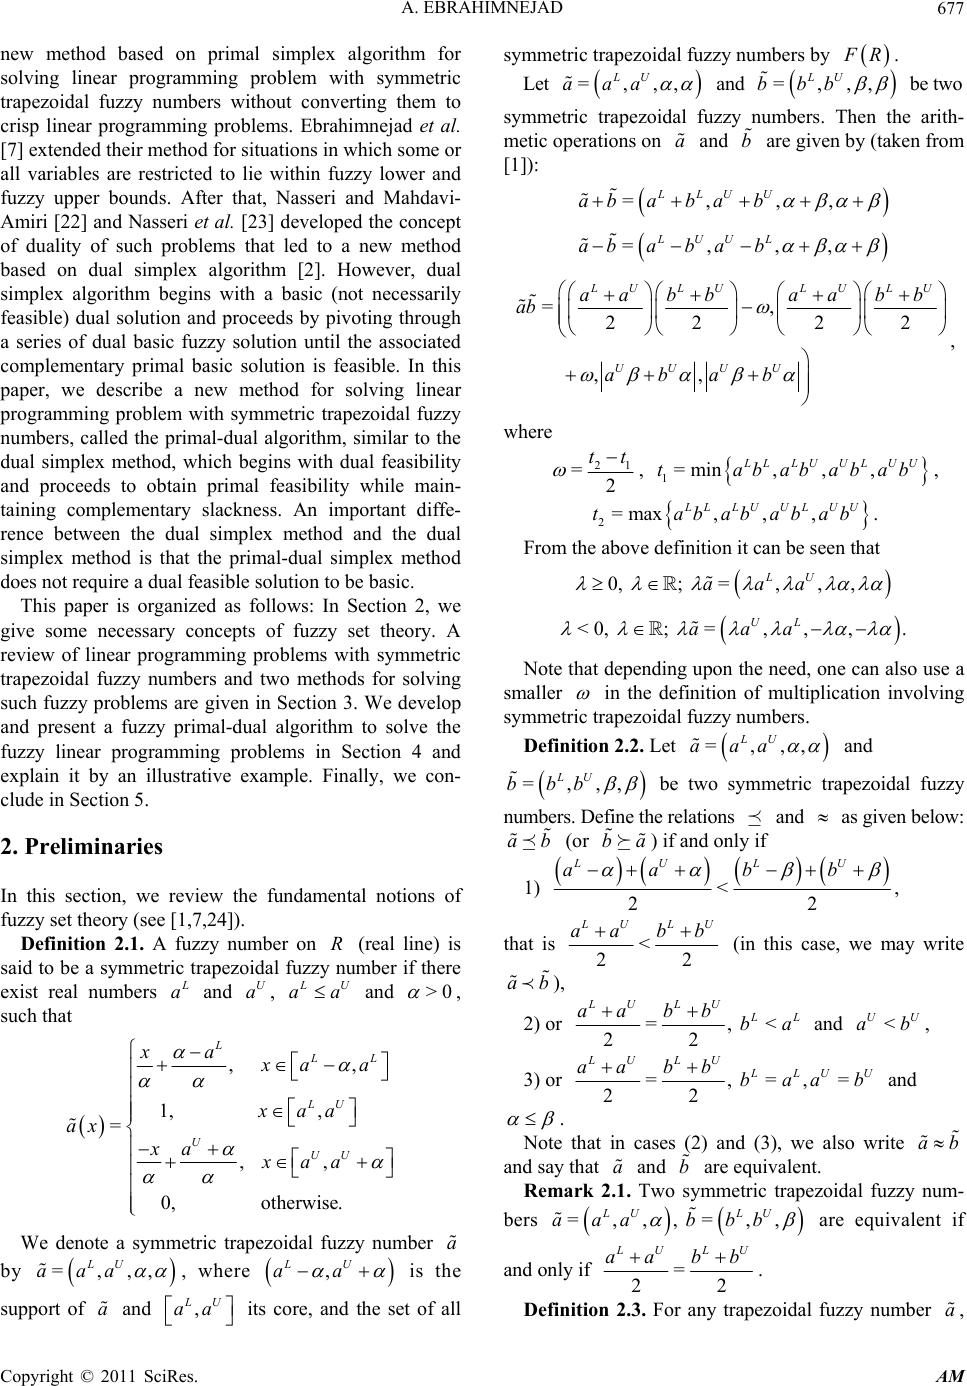 linear programming concept paper Application of linear programming to production systems problem:  the application of linear programming to optimization problems has wider  concept.